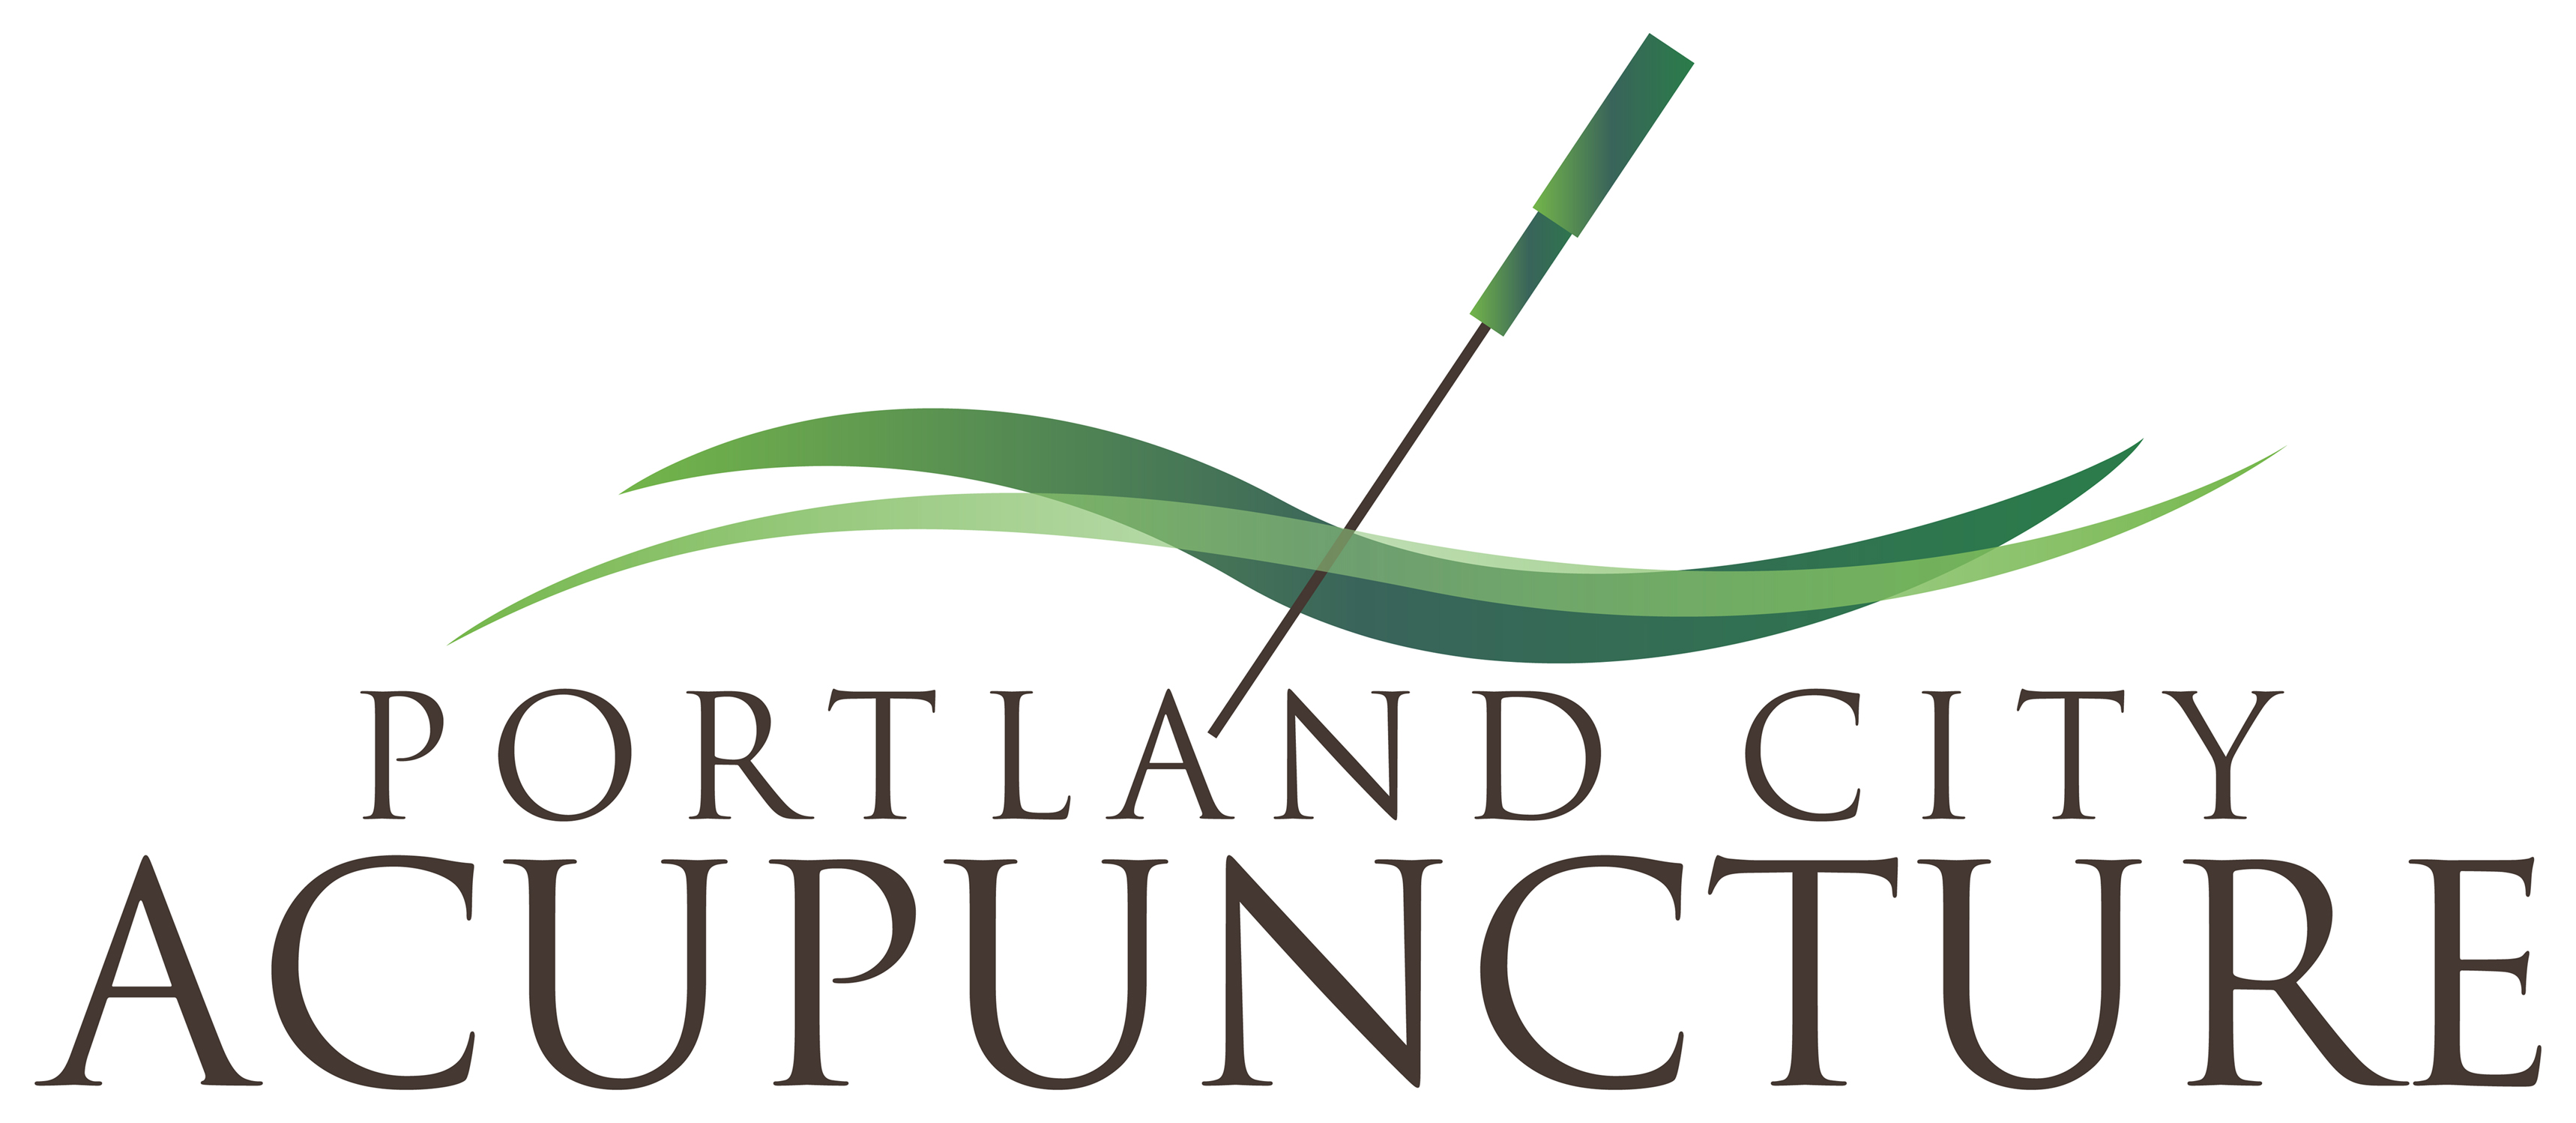 Portland City Acupuncture